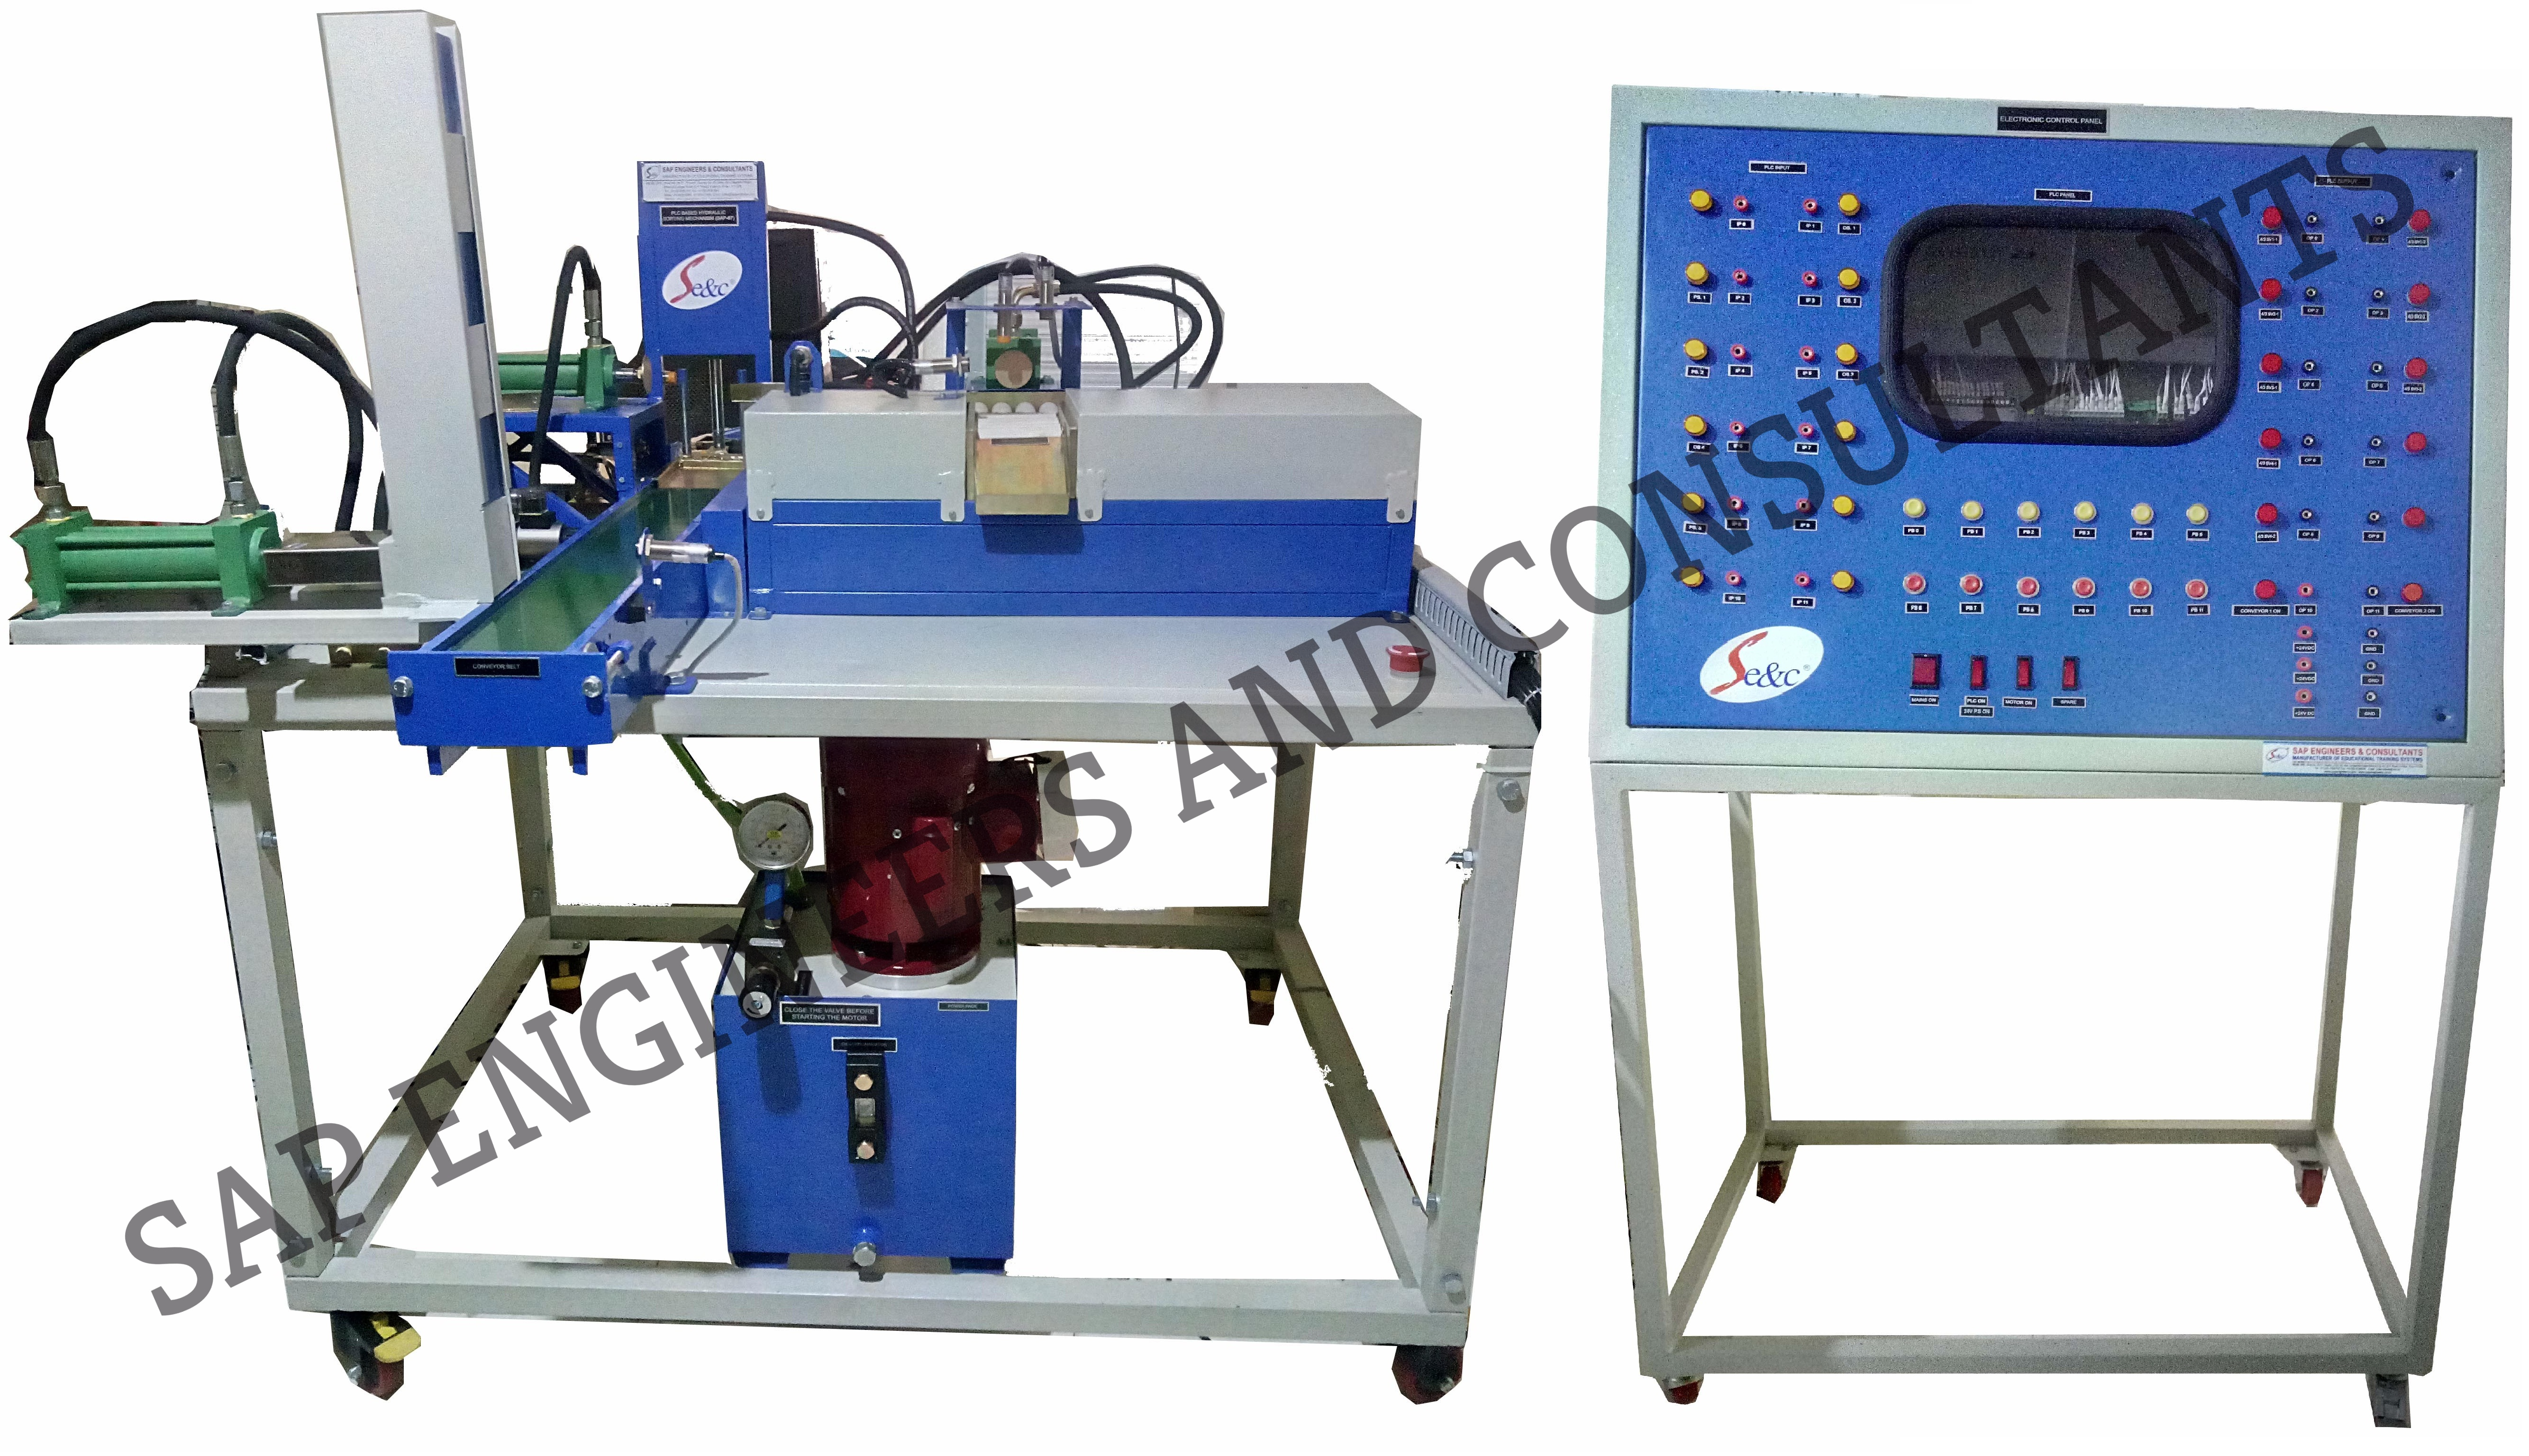 PLC Based Electro Hydraulic Sorting Mechanism